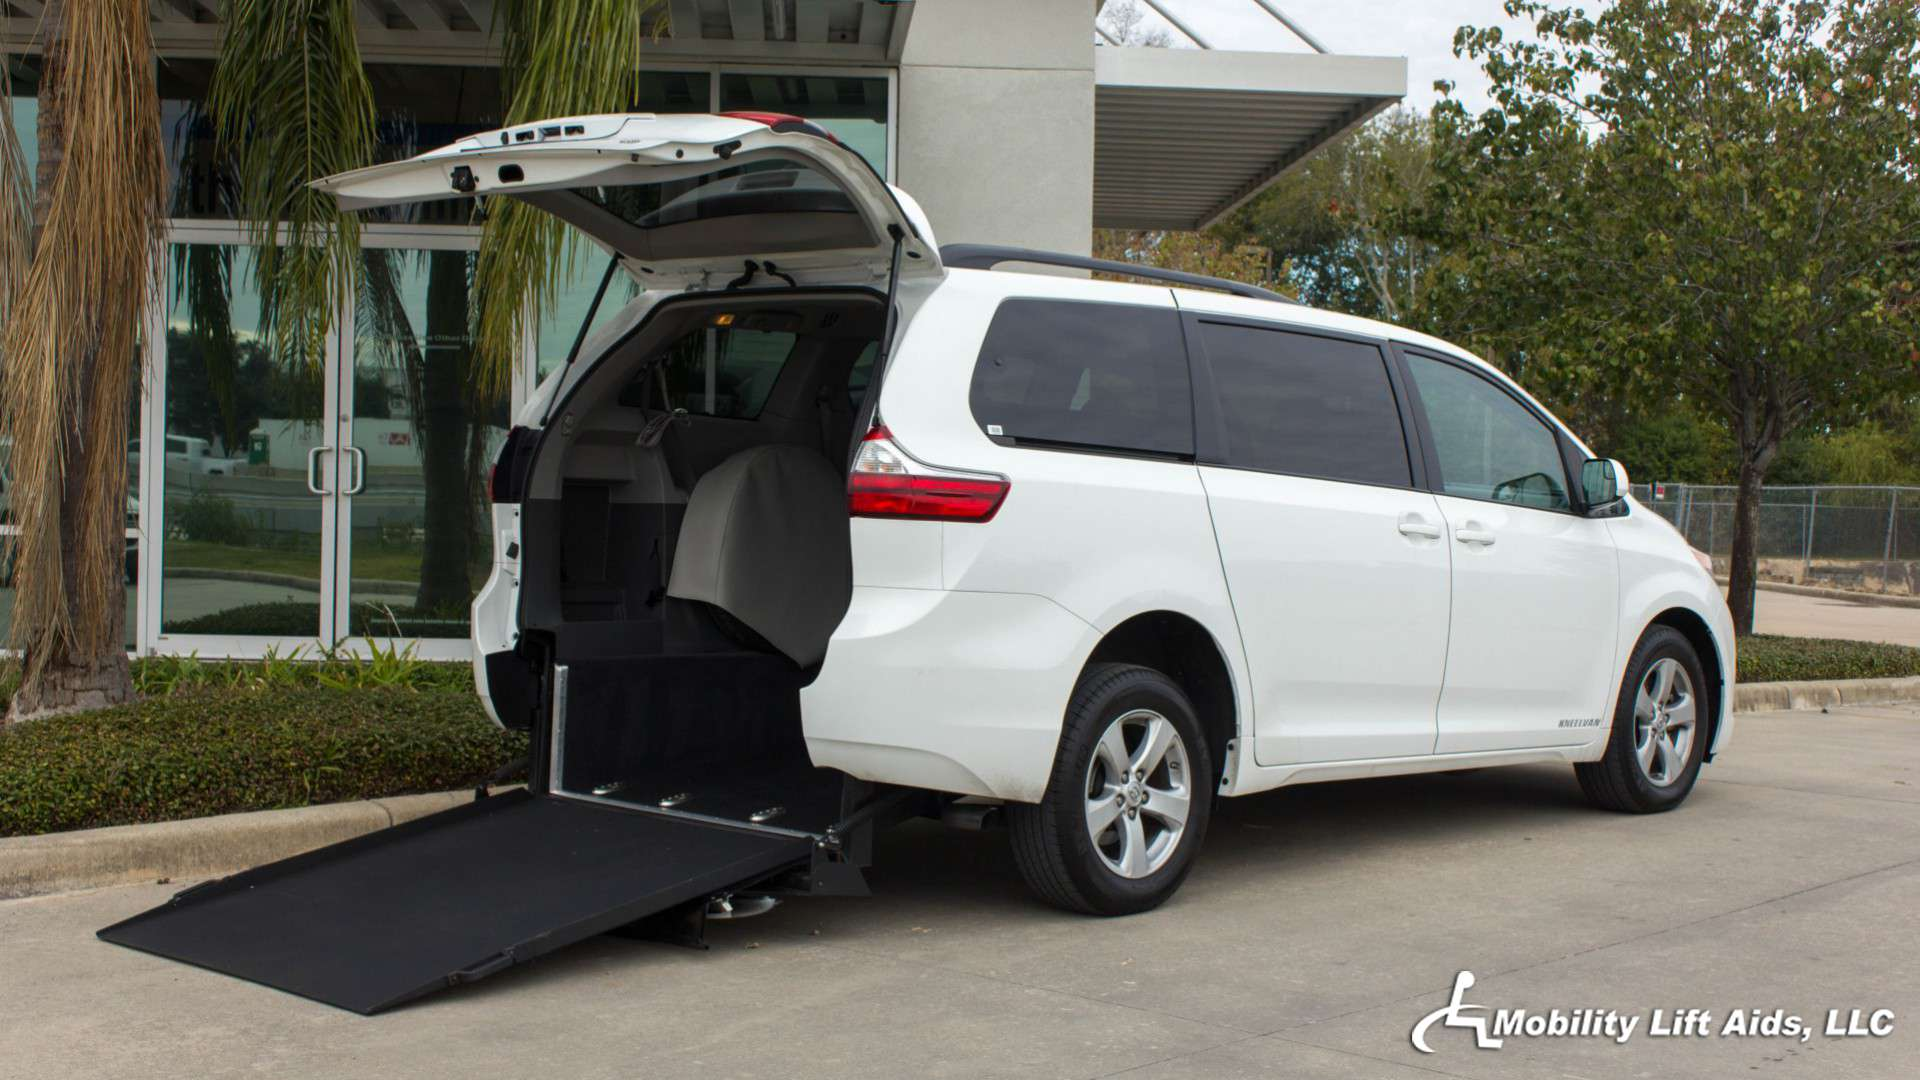 wheelchair van for sale 2016 toyota sienna stock 1023. Black Bedroom Furniture Sets. Home Design Ideas